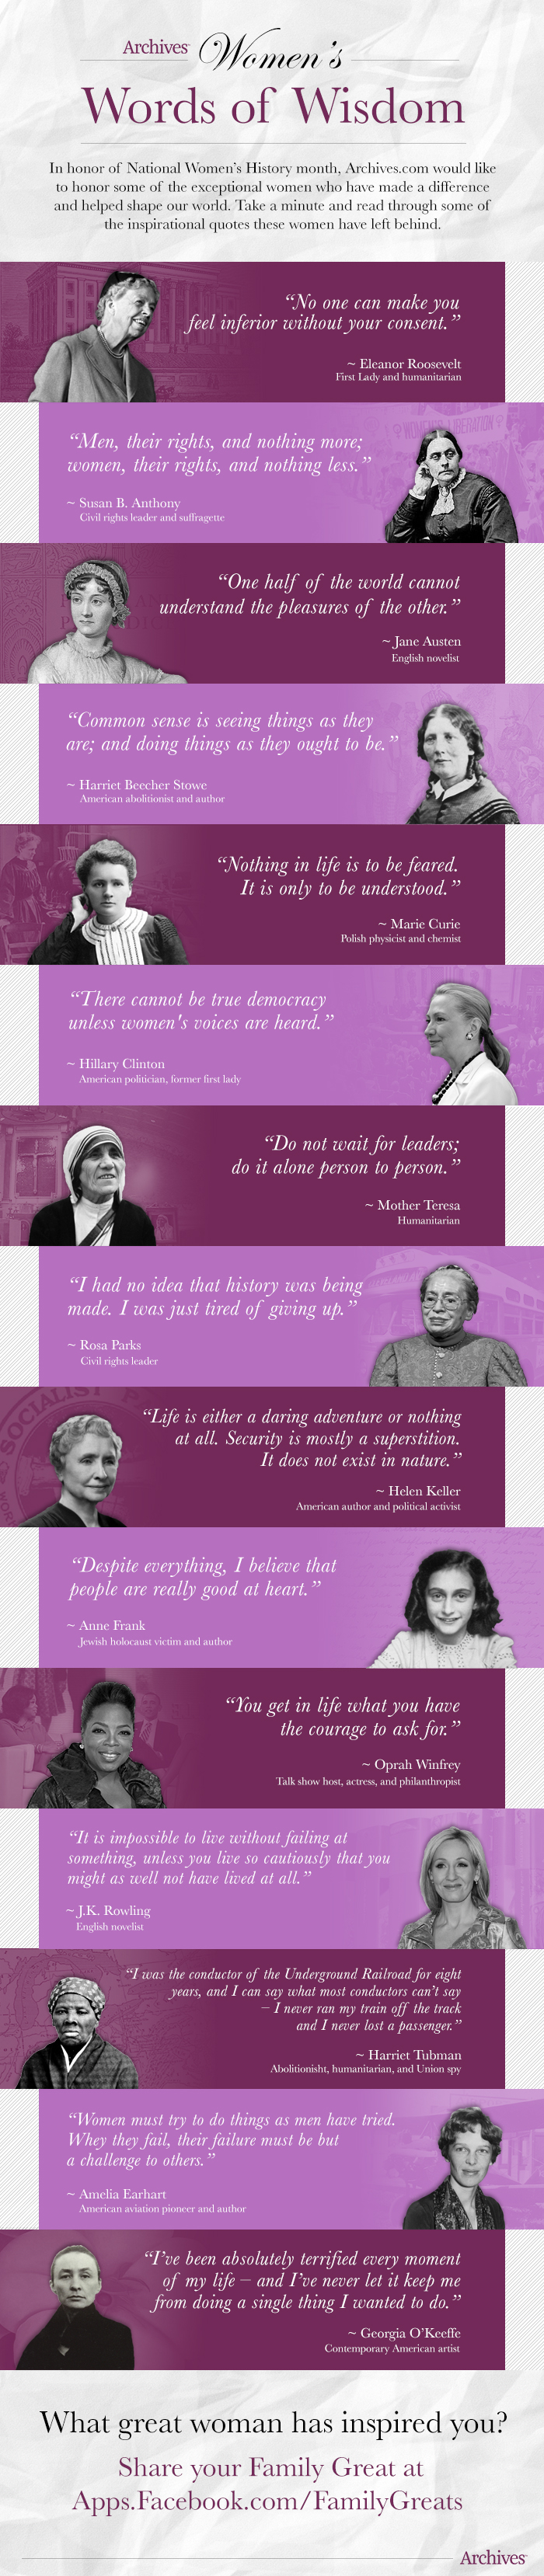 National Women's History Month - Archives.com